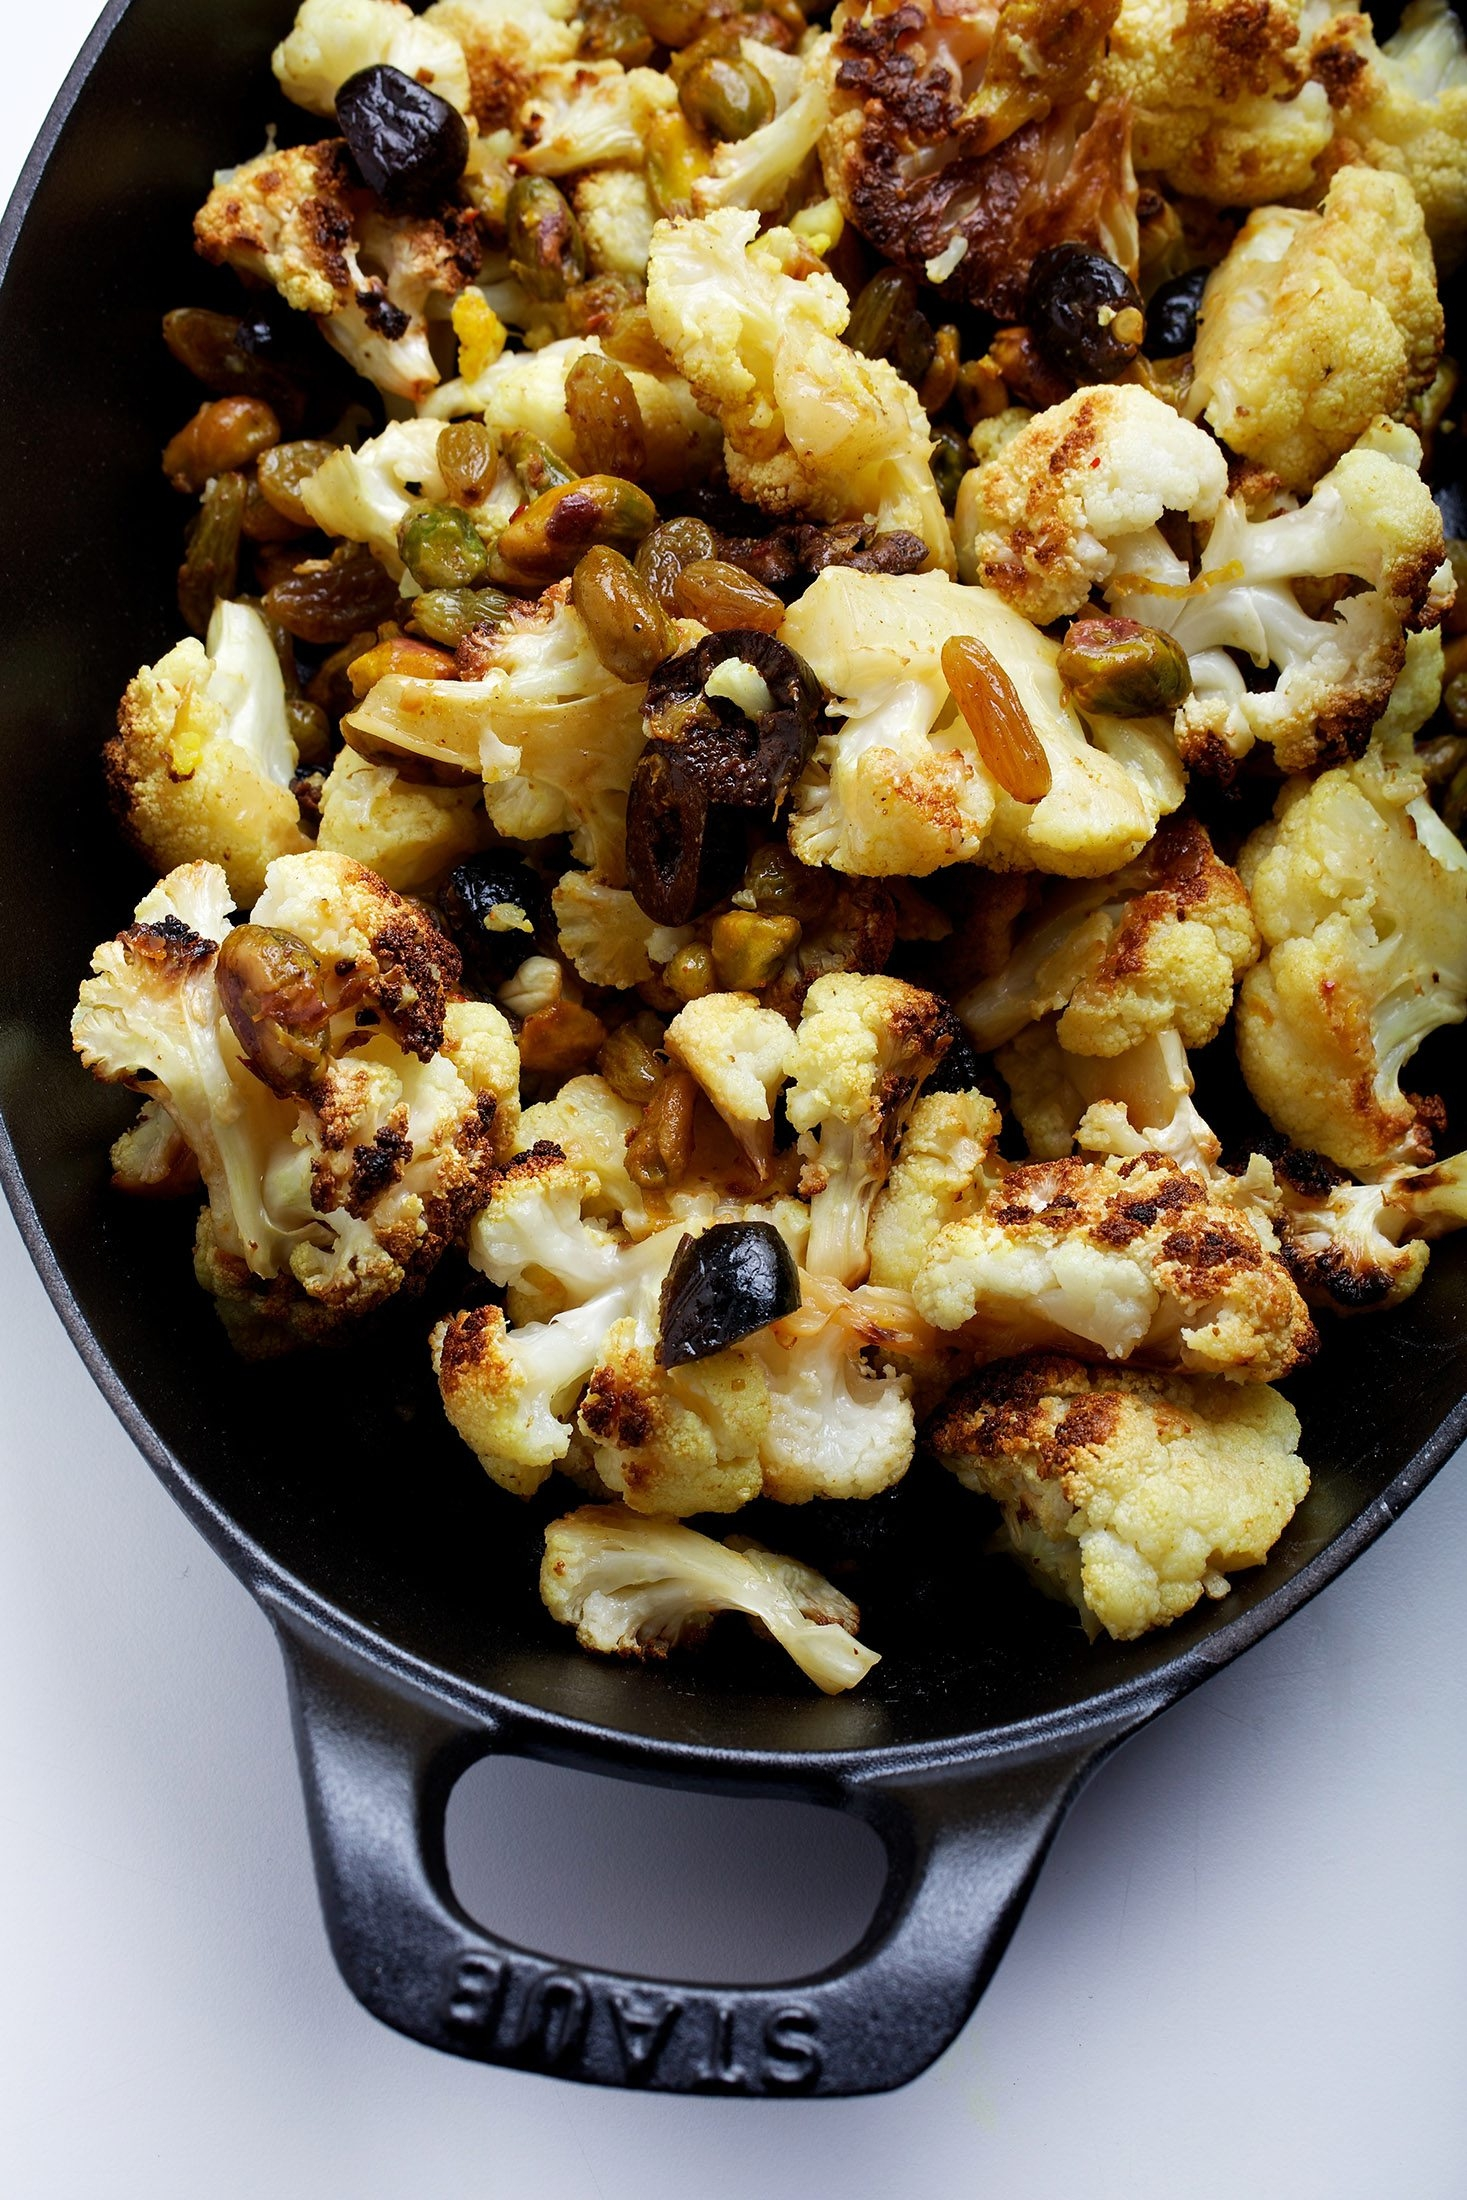 Cauliflower is a visibly alluring vegetable, as  in this Roasted Cauliflower with Pistachios, Olives and Raisins dish. See recipe below.